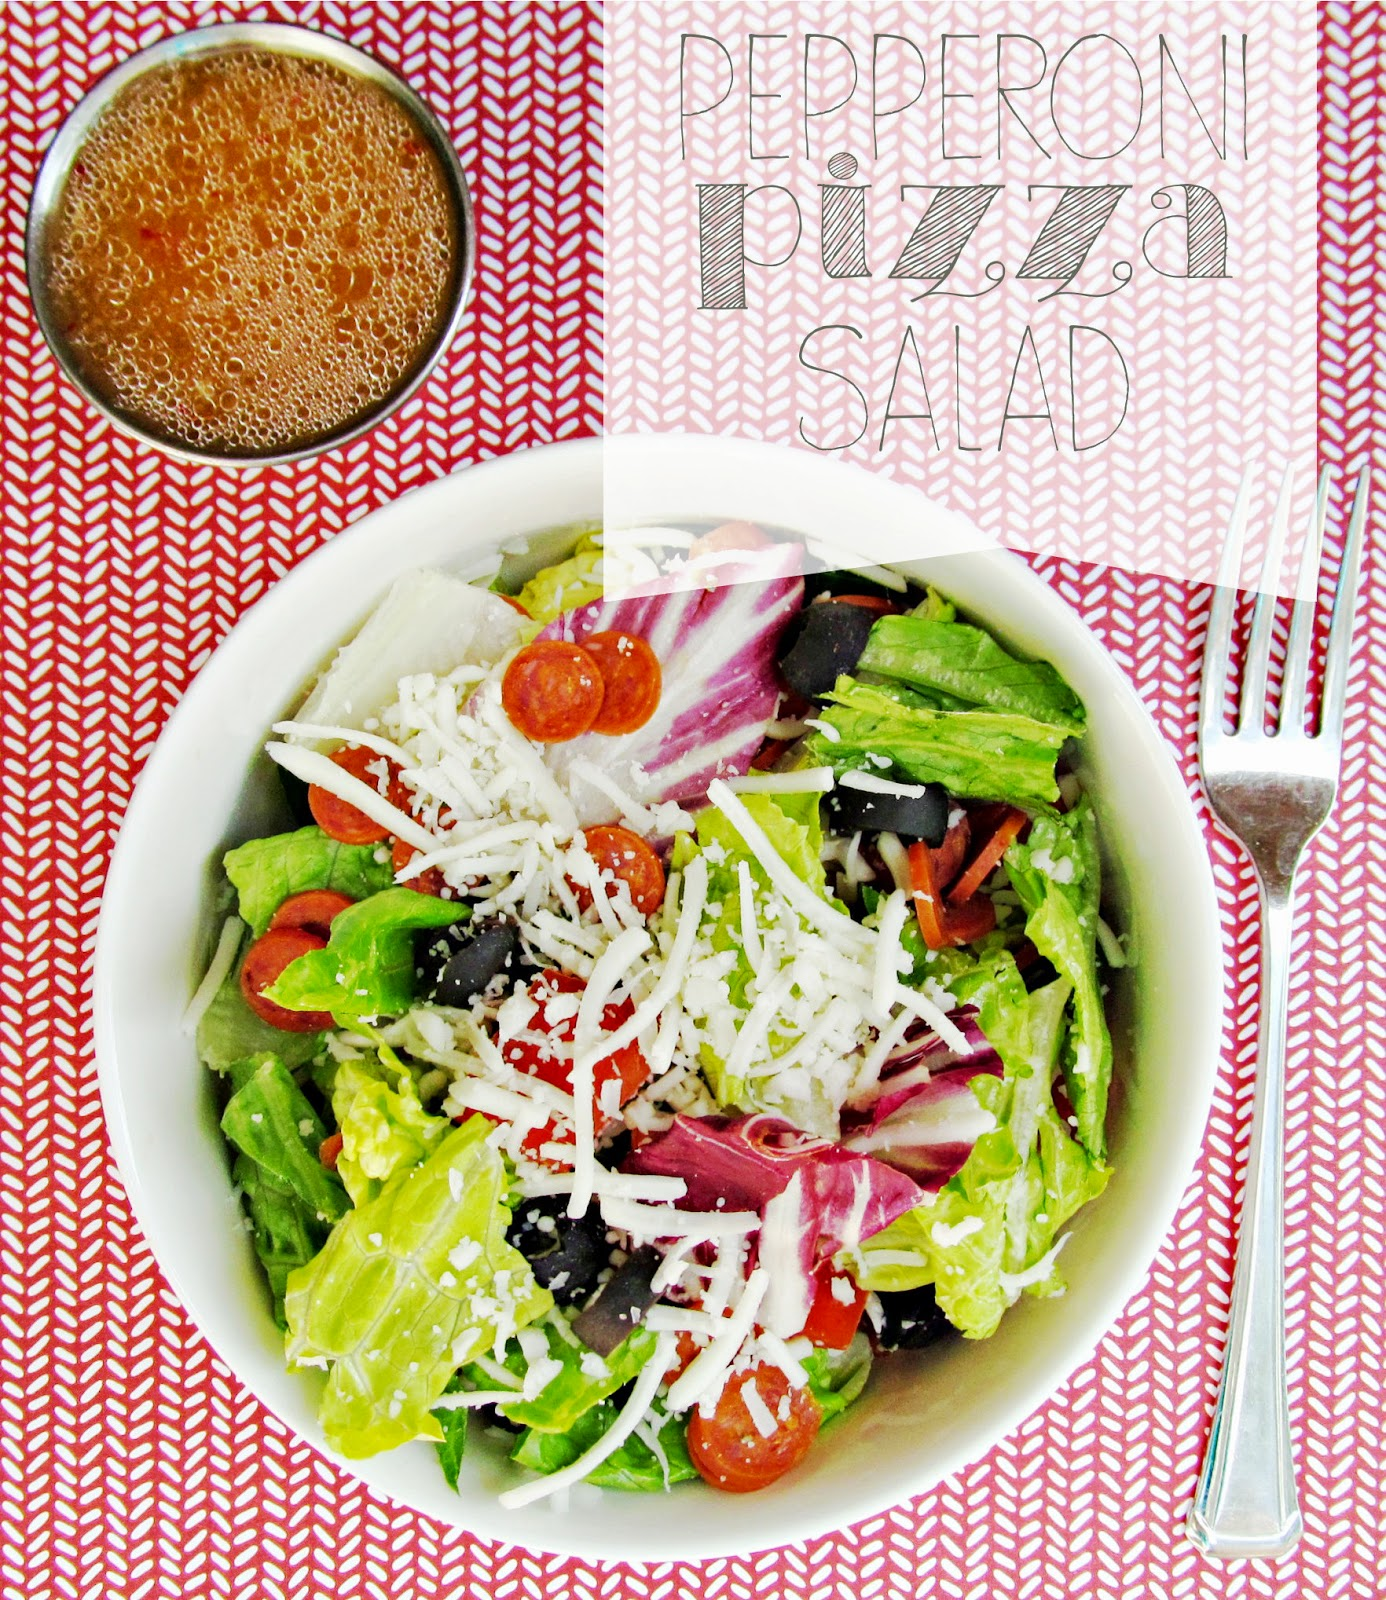 Almost as good as the real thing! Pepperoni Pizza Salad! A great Summer picnic dish!